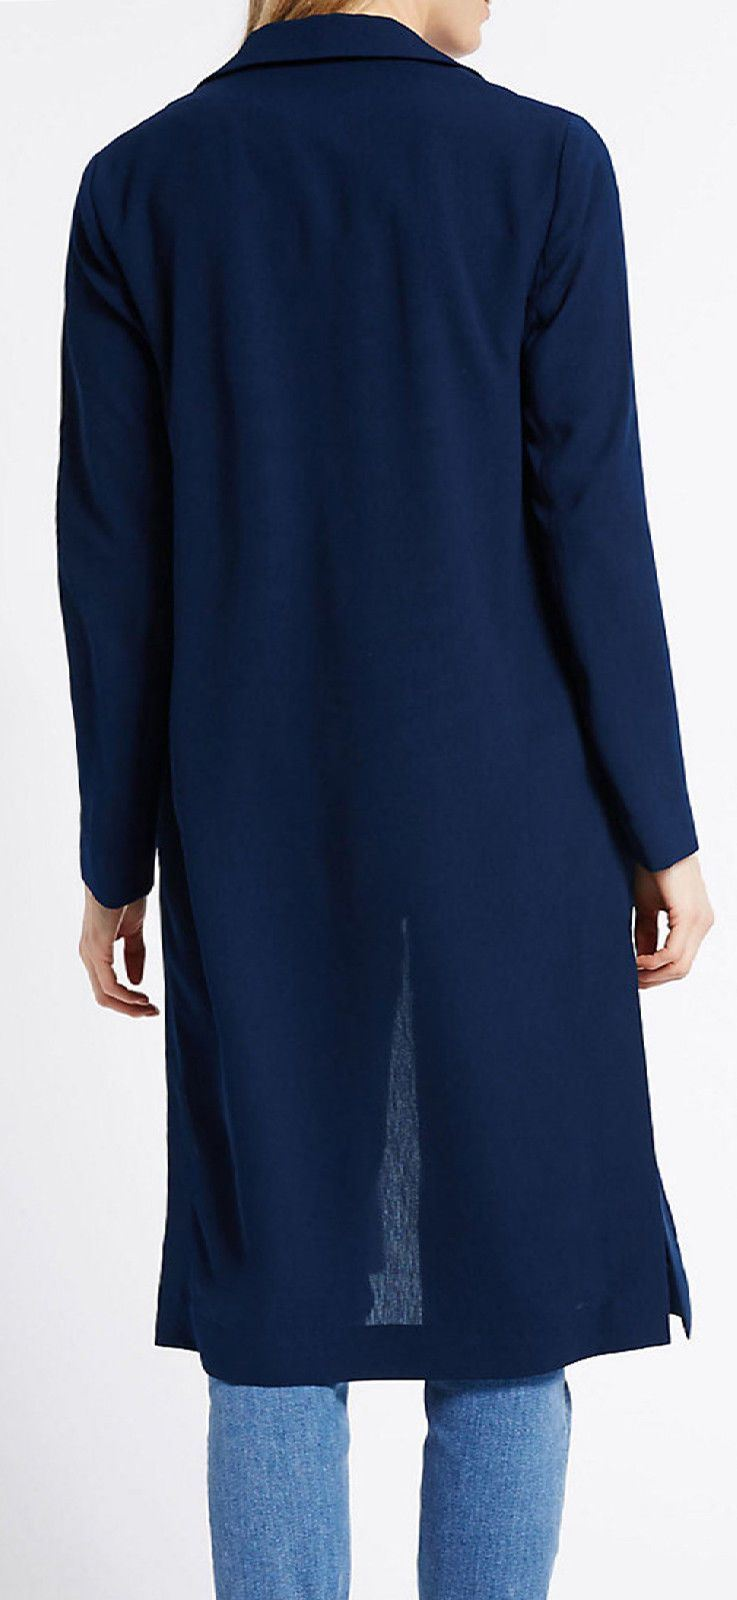 MARKS-AND-SPENCER-Black-or-Navy-Unlined-Crepe-Duster-Coat-SALE-Was-45 thumbnail 10